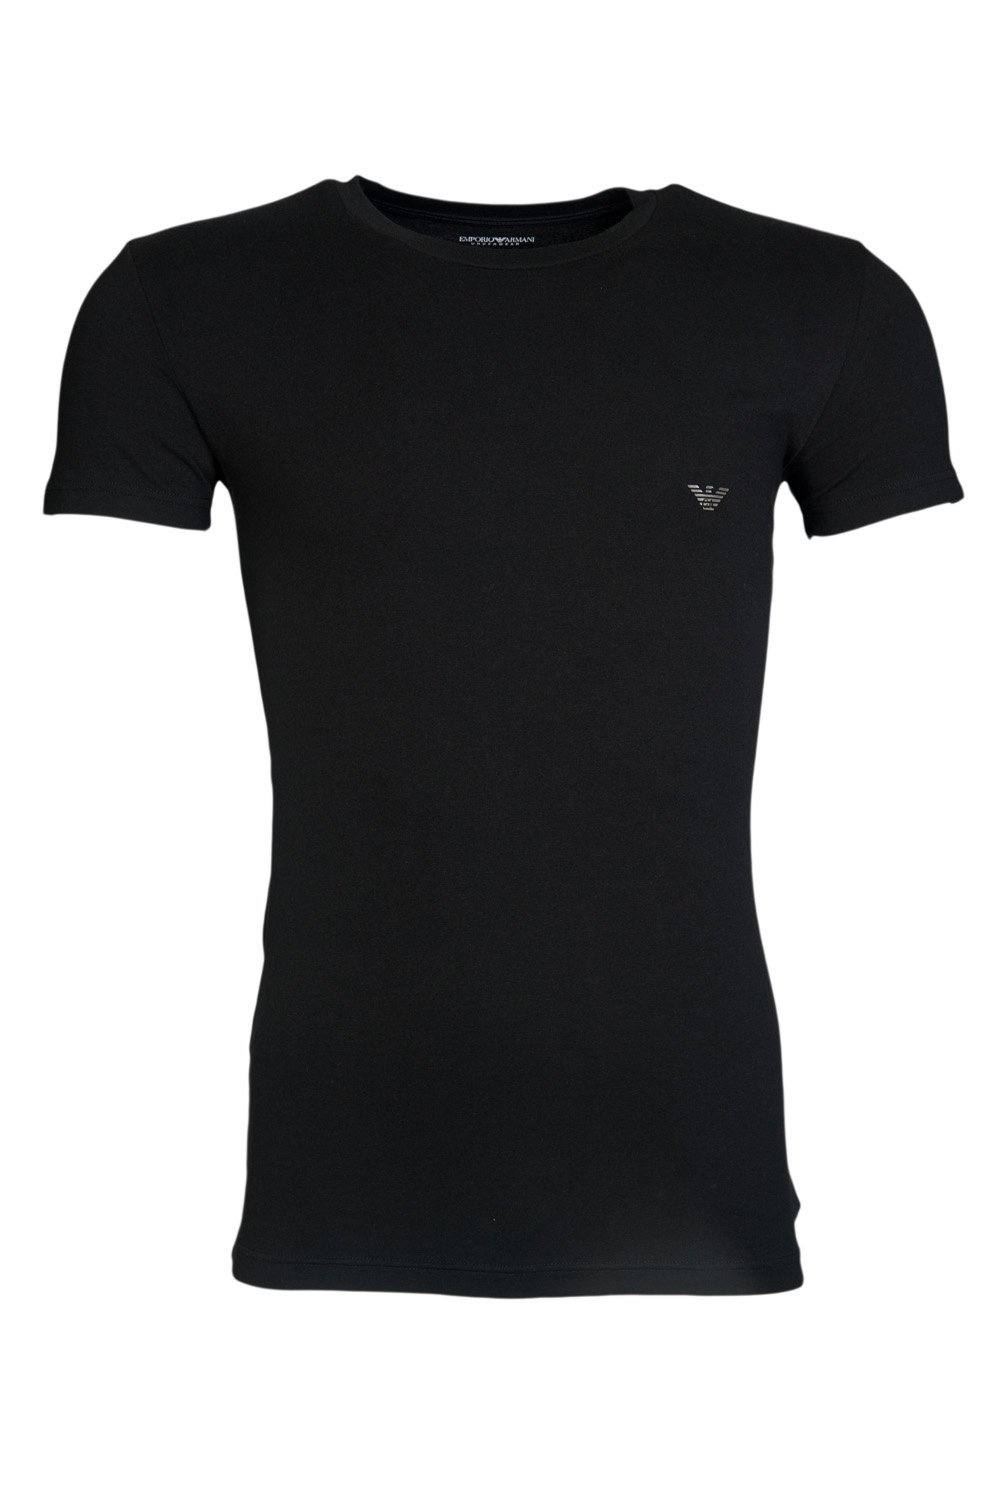 emporio armani mens round neck t shirts 1110355p745 ebay. Black Bedroom Furniture Sets. Home Design Ideas